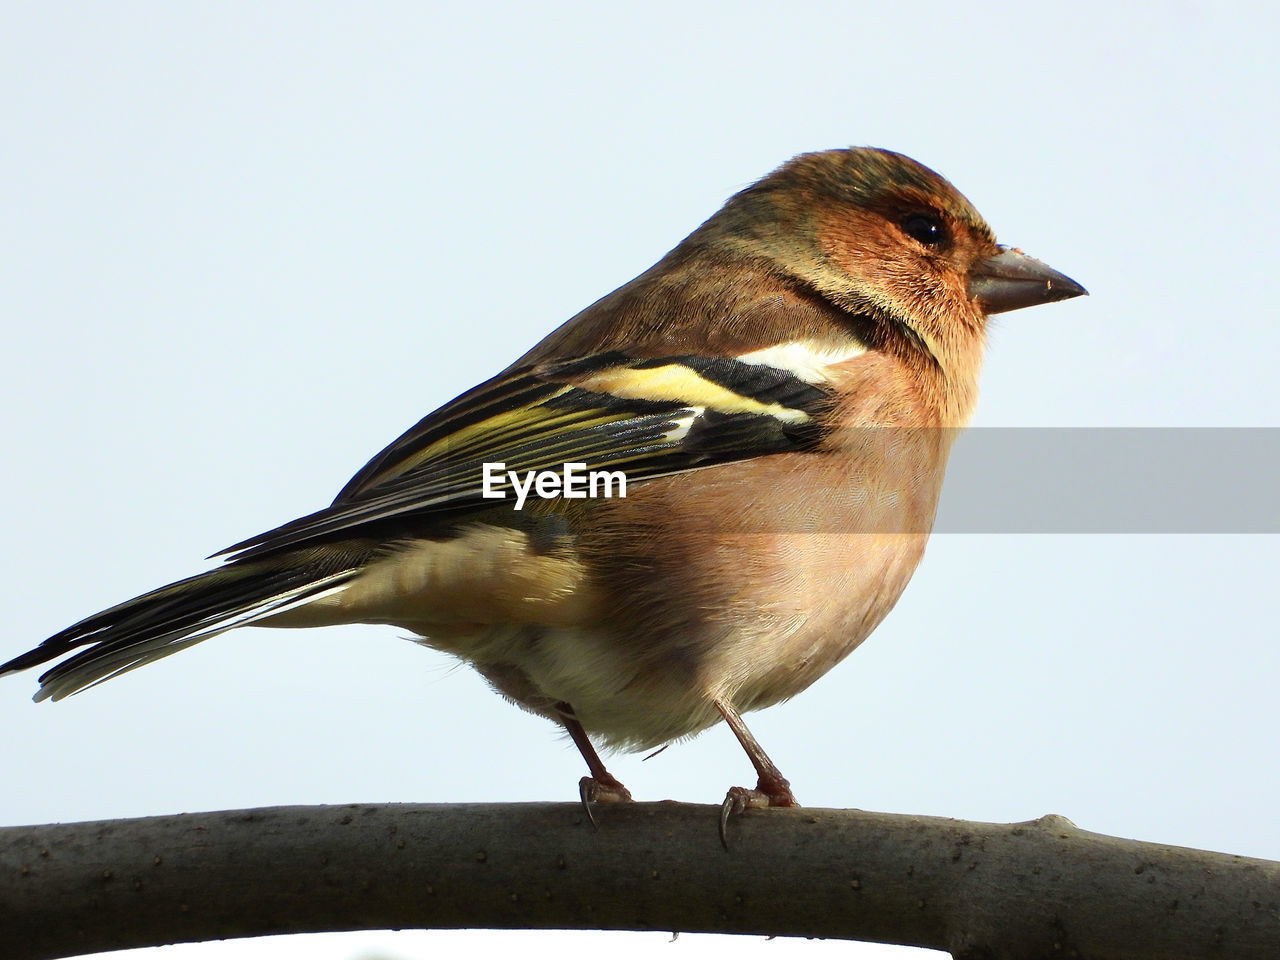 bird, animal themes, one animal, animal, vertebrate, perching, animals in the wild, animal wildlife, close-up, no people, nature, day, clear sky, copy space, full length, outdoors, sky, sparrow, focus on foreground, side view